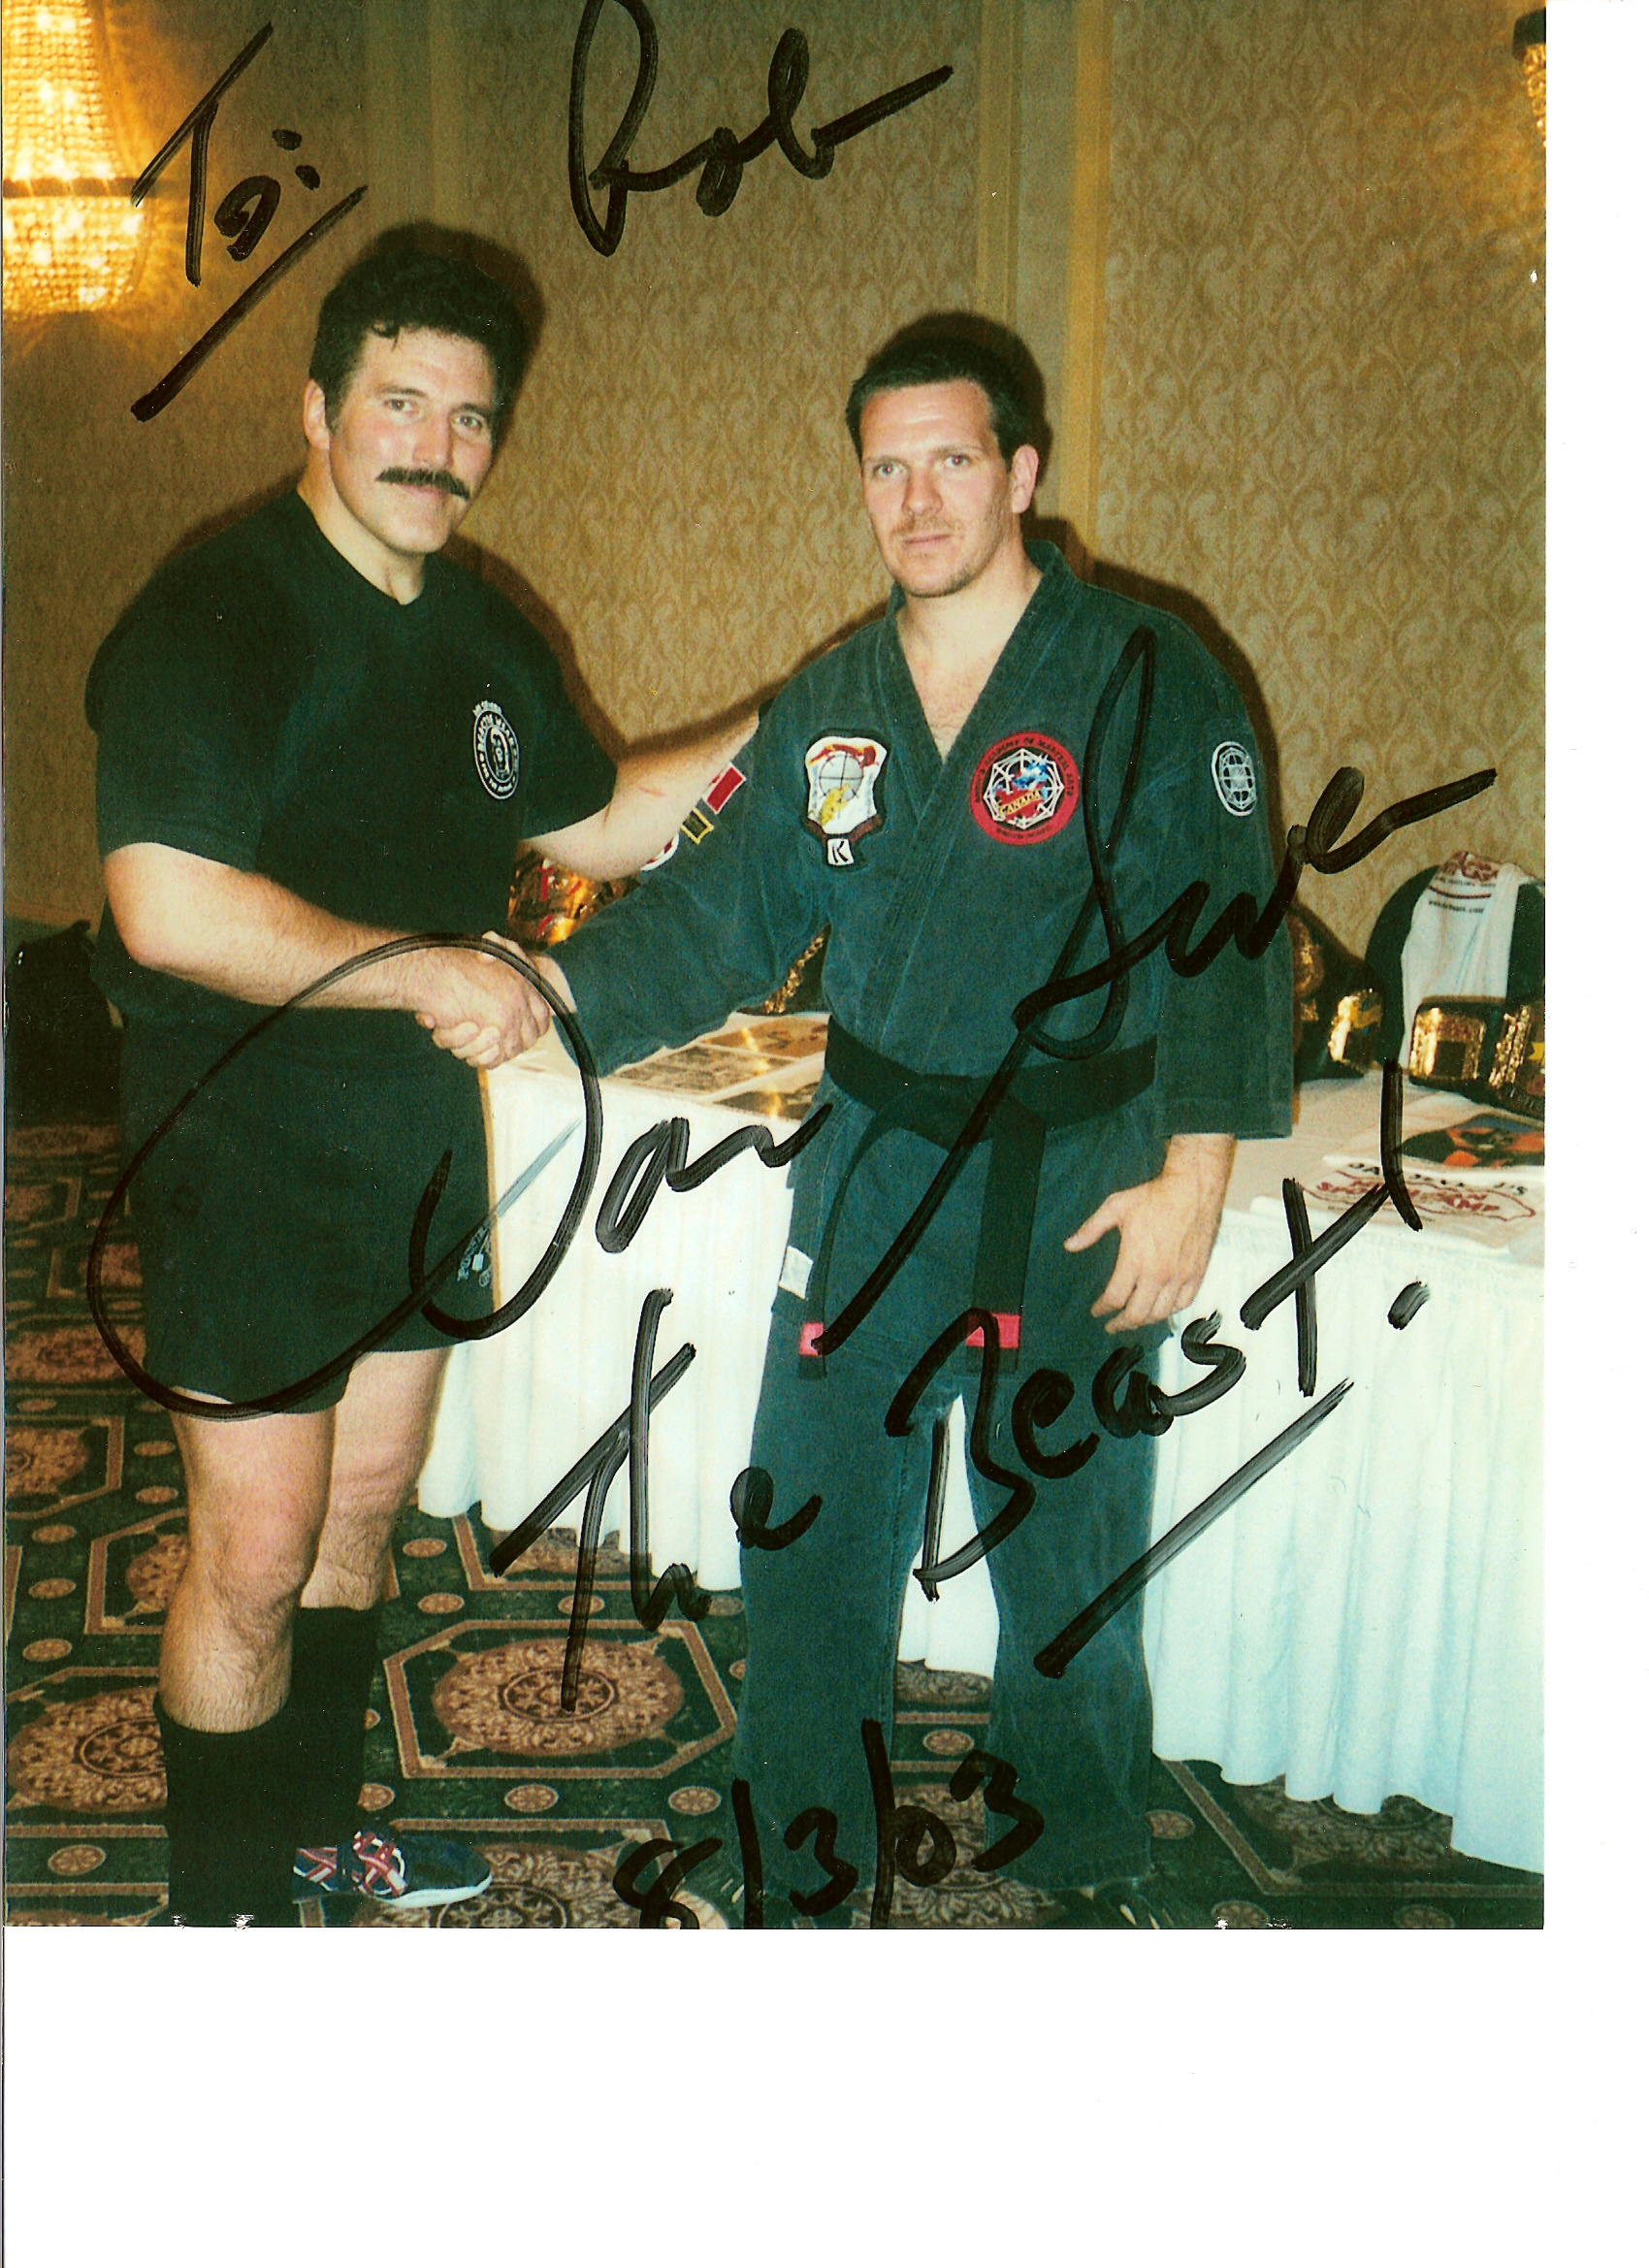 Rob and Dan Severn